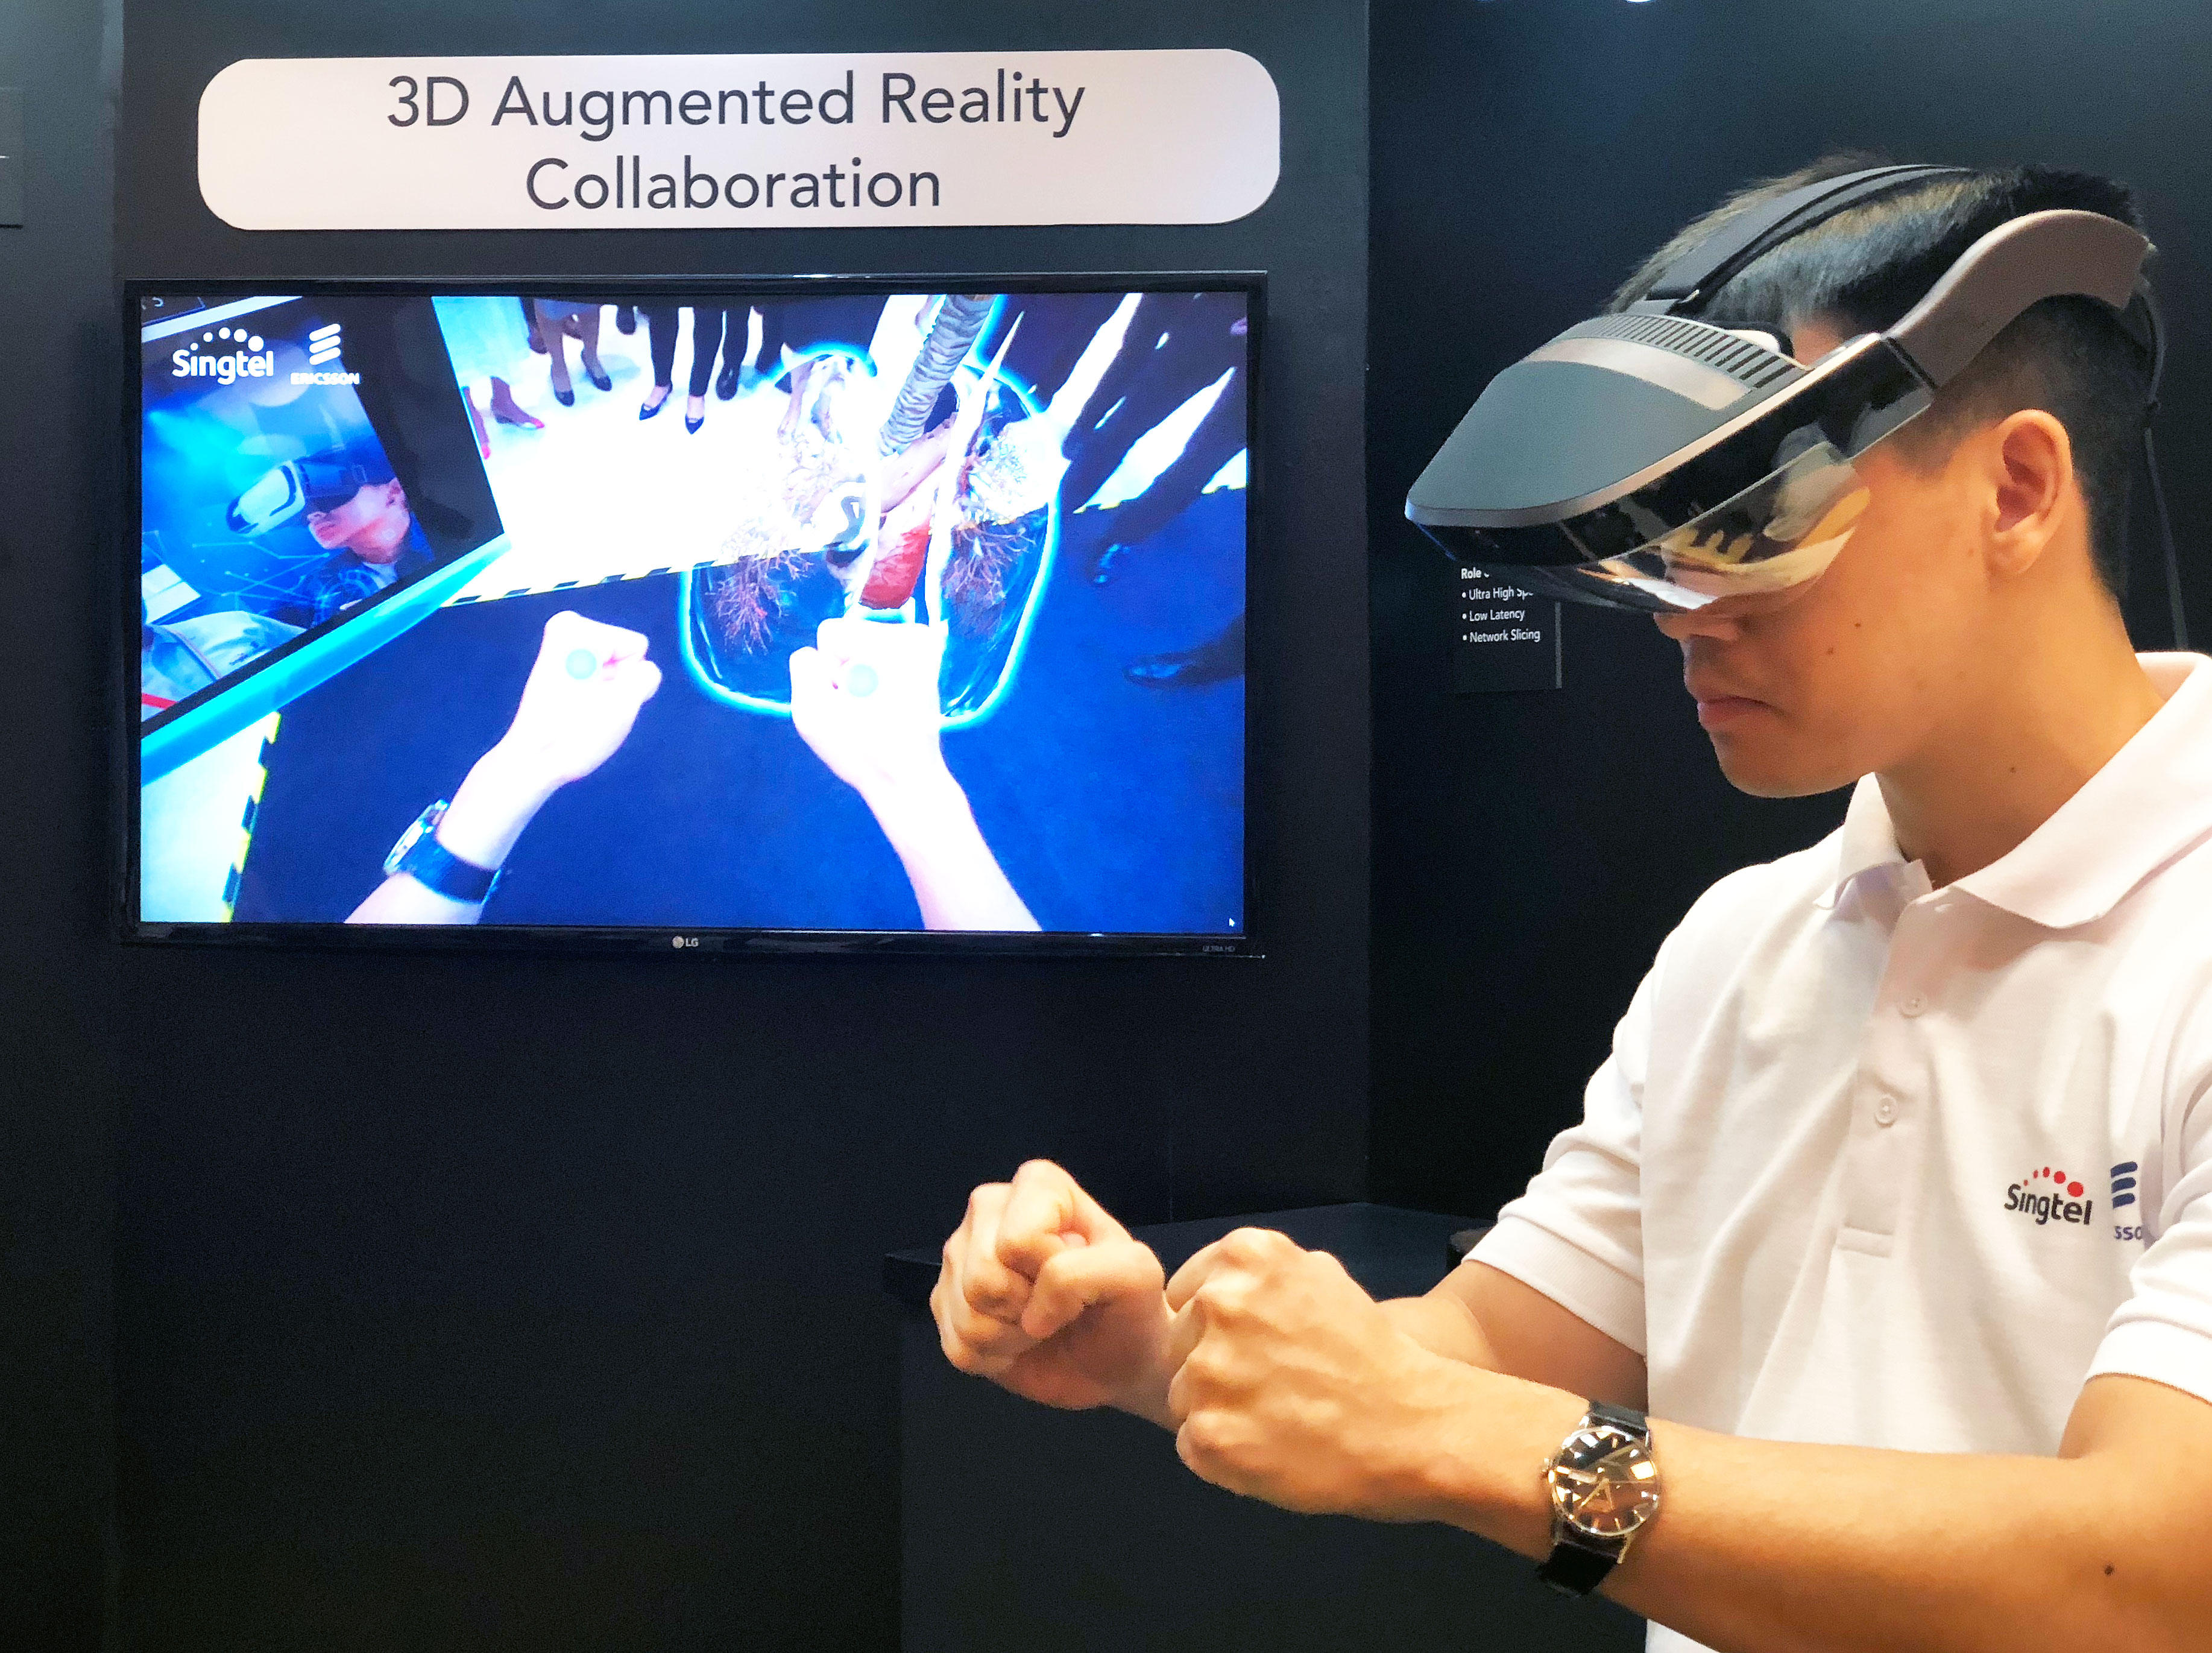 <p>5G networks will let users collaborate in AR in real time thanks to its low latency.</p>